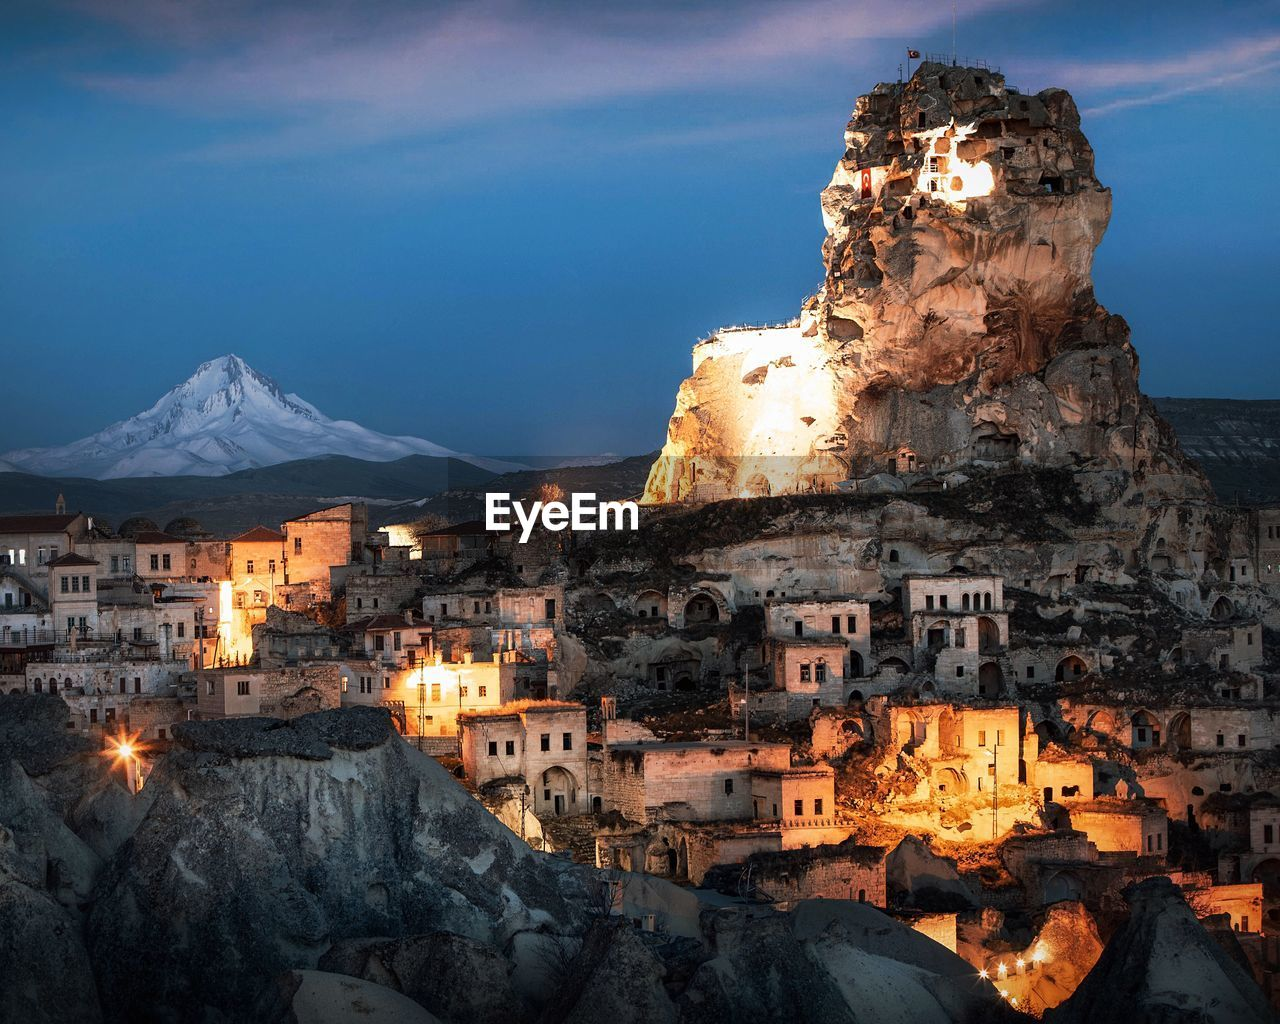 architecture, built structure, building exterior, building, sky, mountain, residential district, city, nature, tourism, travel destinations, travel, illuminated, no people, dusk, night, rock formation, town